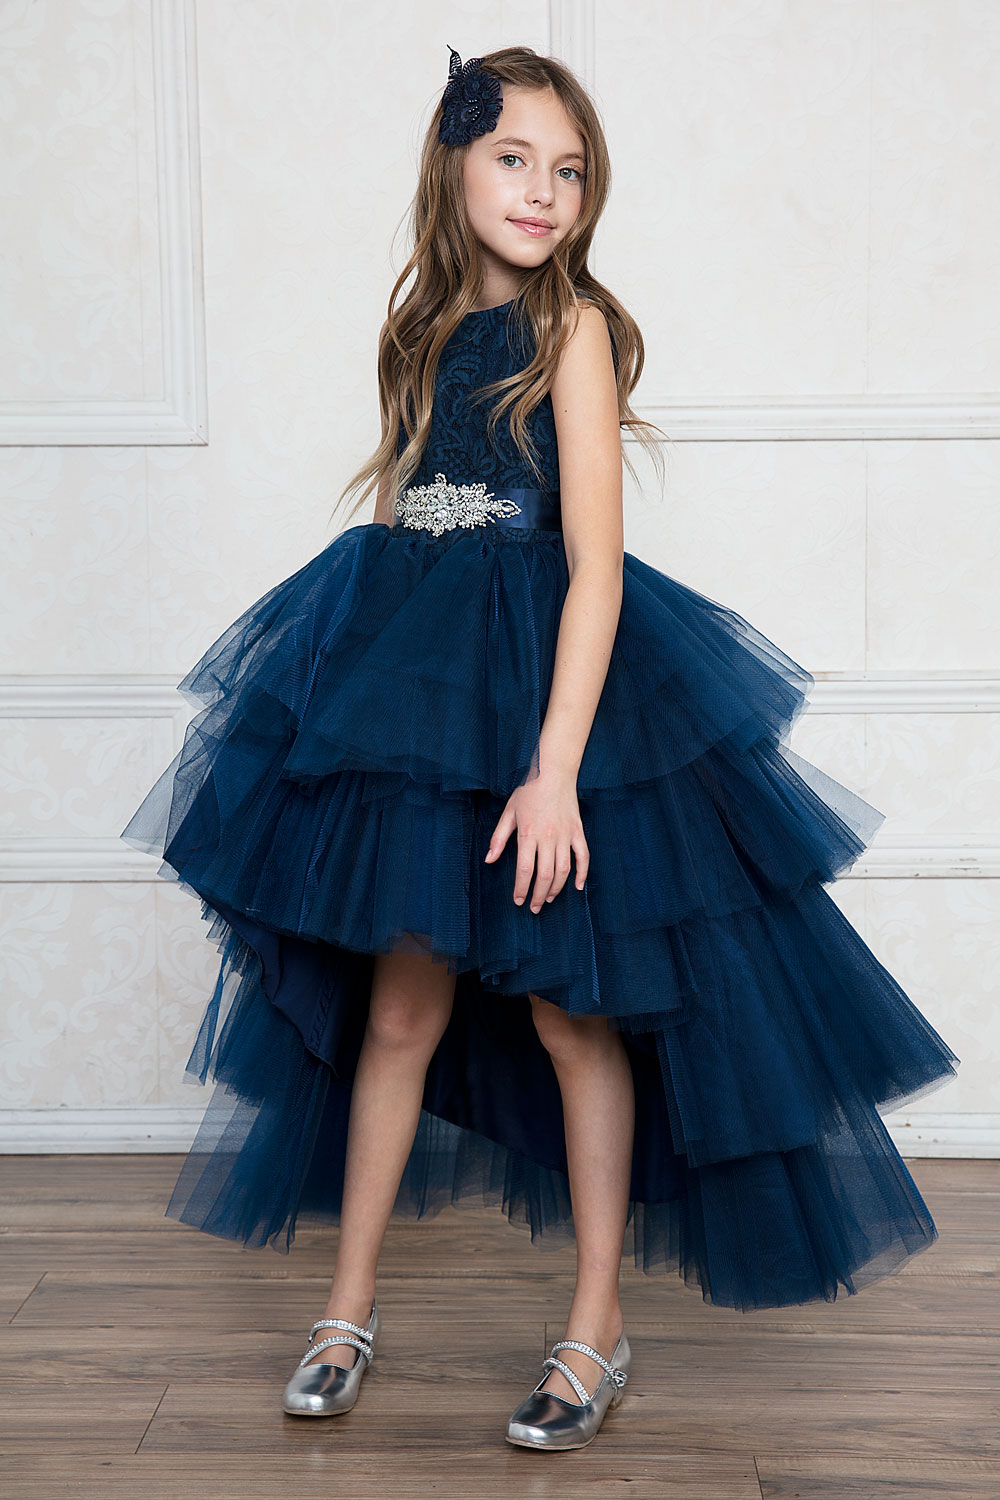 Robe De Ceremonie Fille Ado Bleu Marine Sofia S Dream